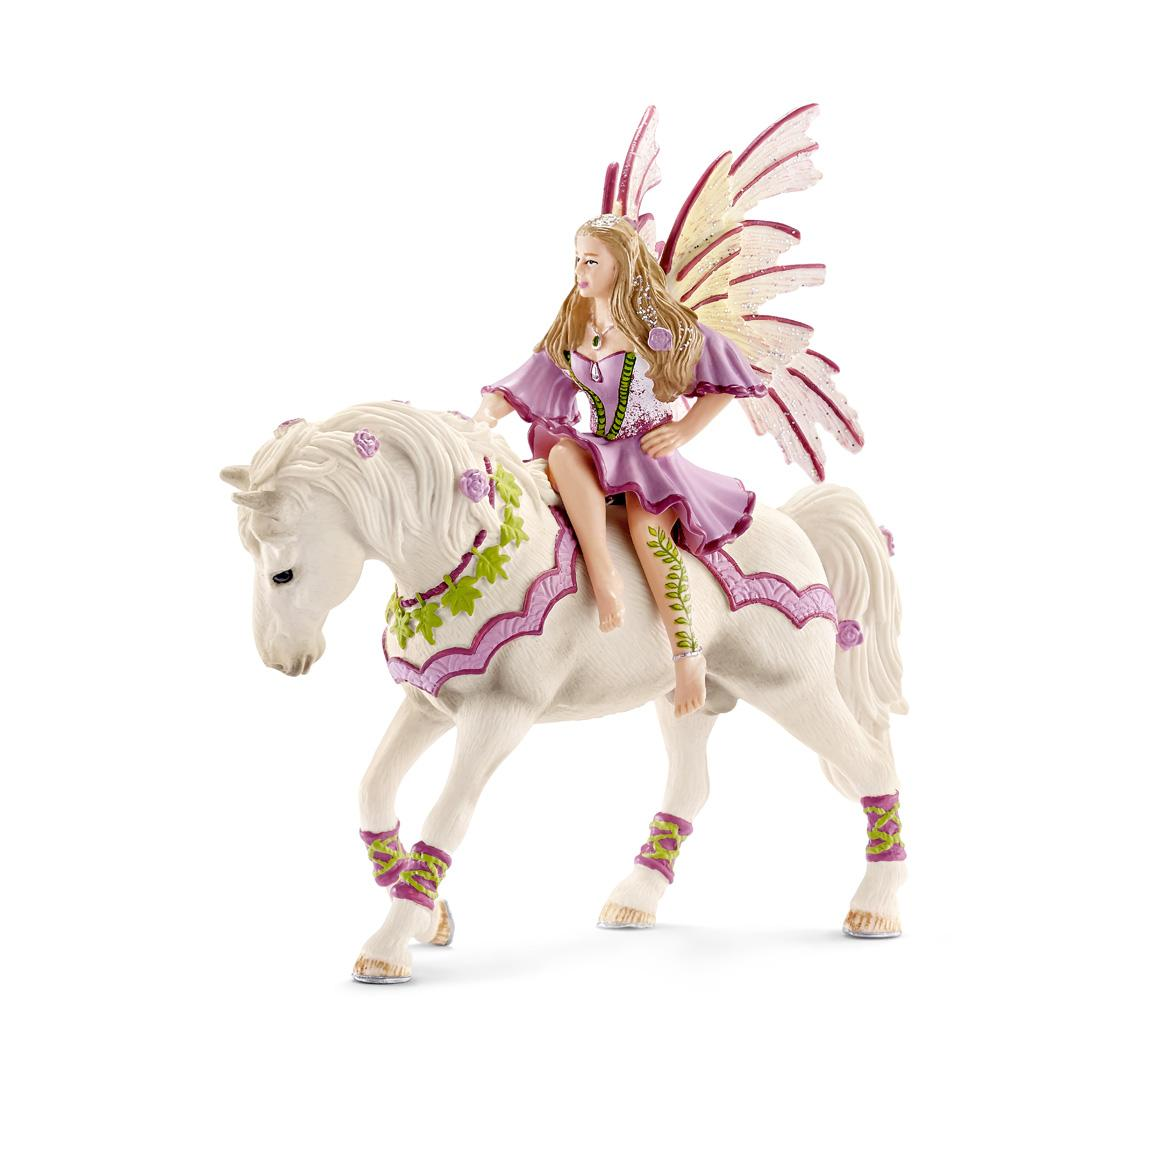 Buy Schleich Bayala figurines and accessories online